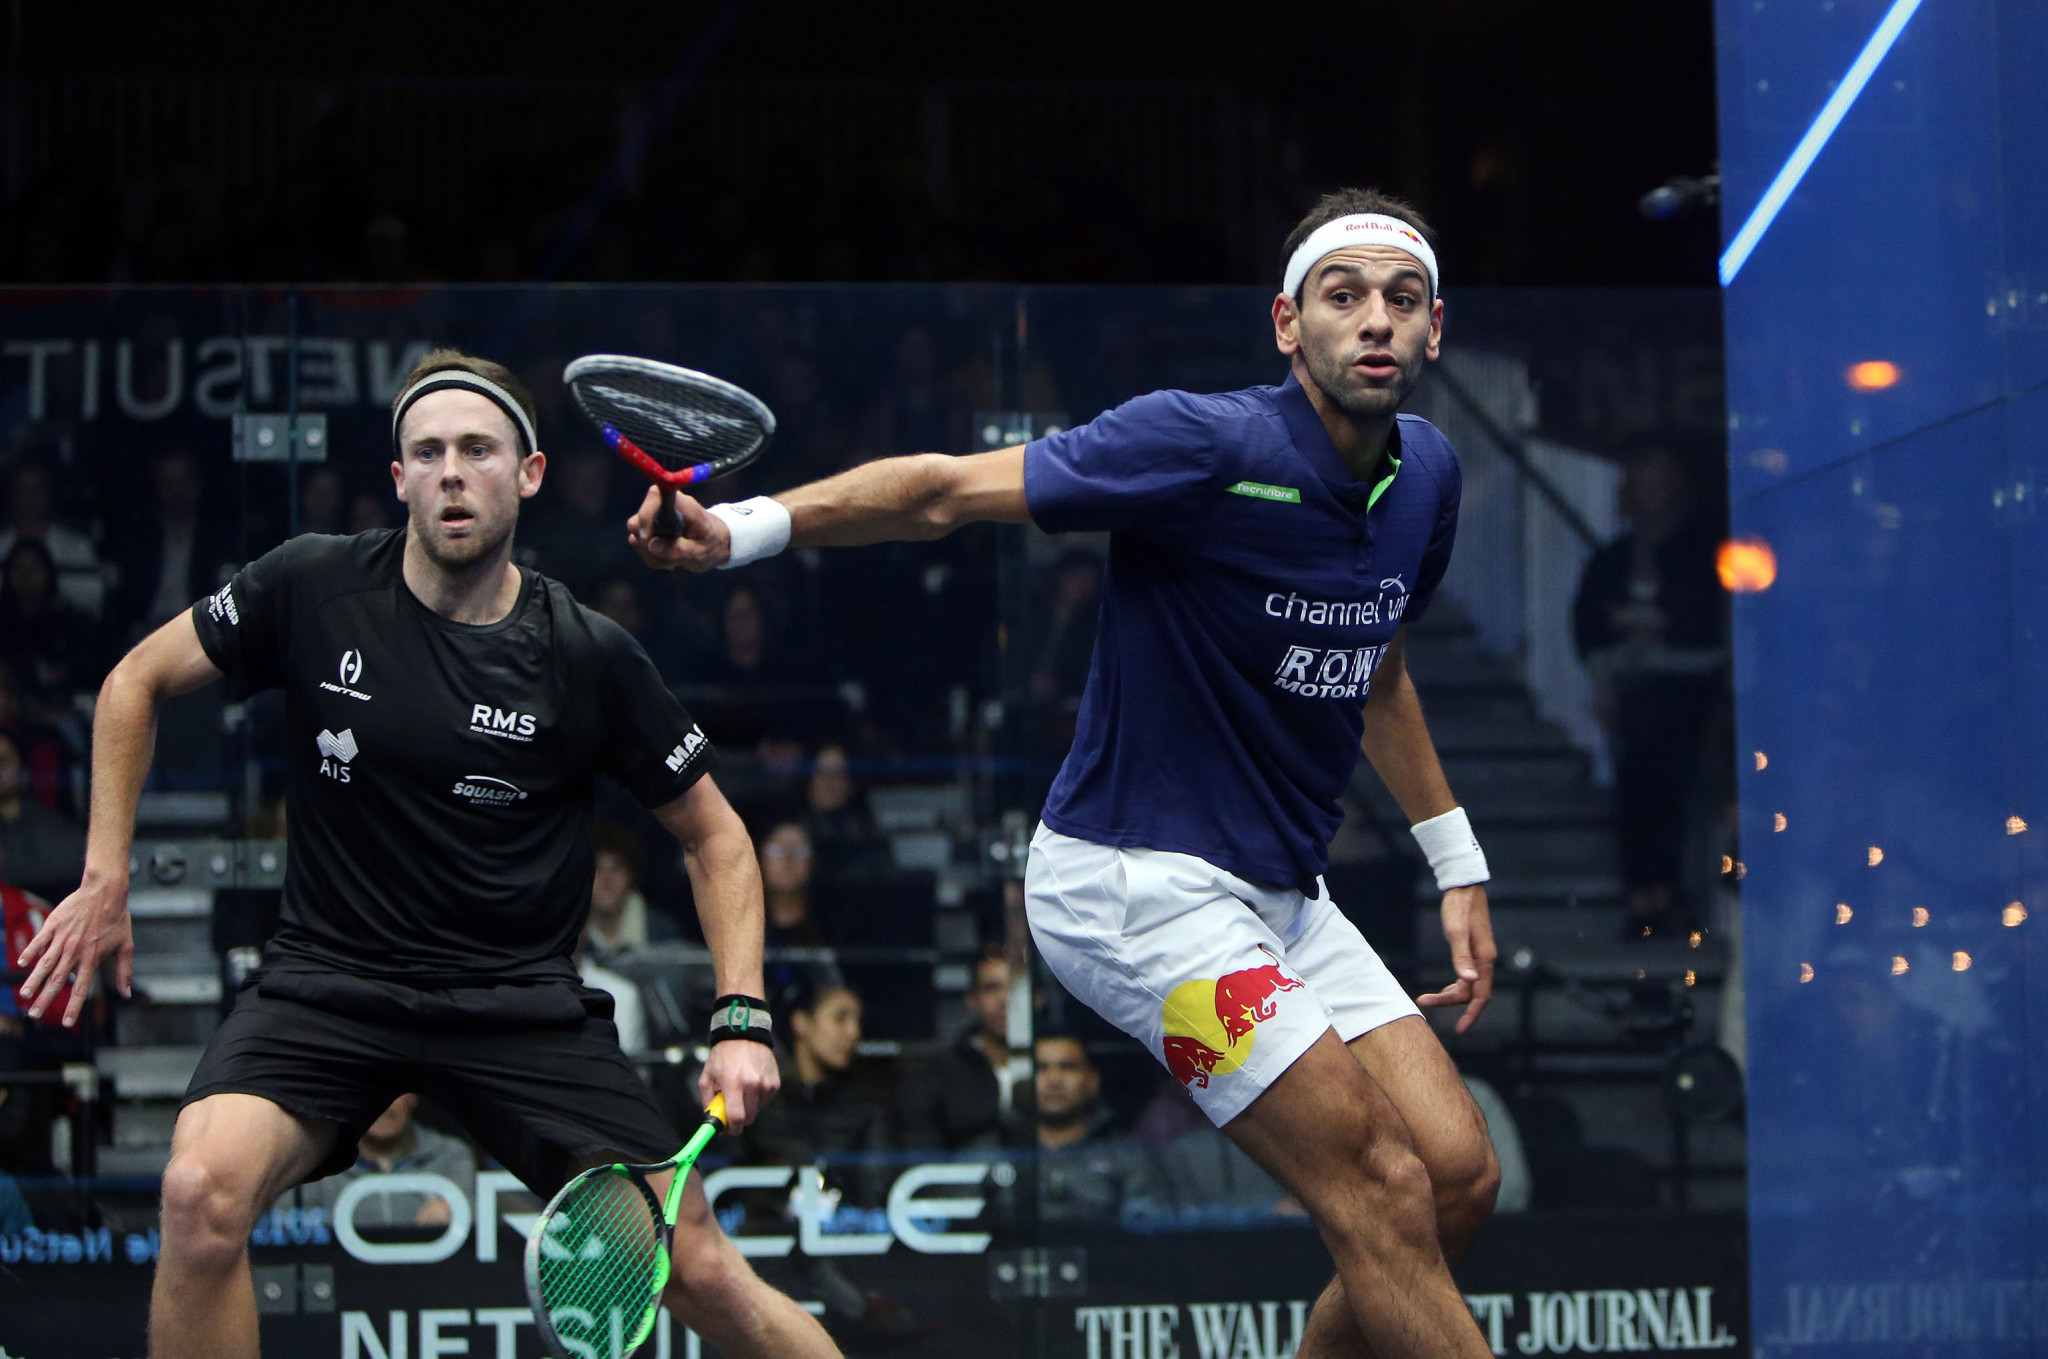 Mohamed ElShorbagy is through to the last four after defeating Australia's Ryan Cuskelly in straight games ©PSA